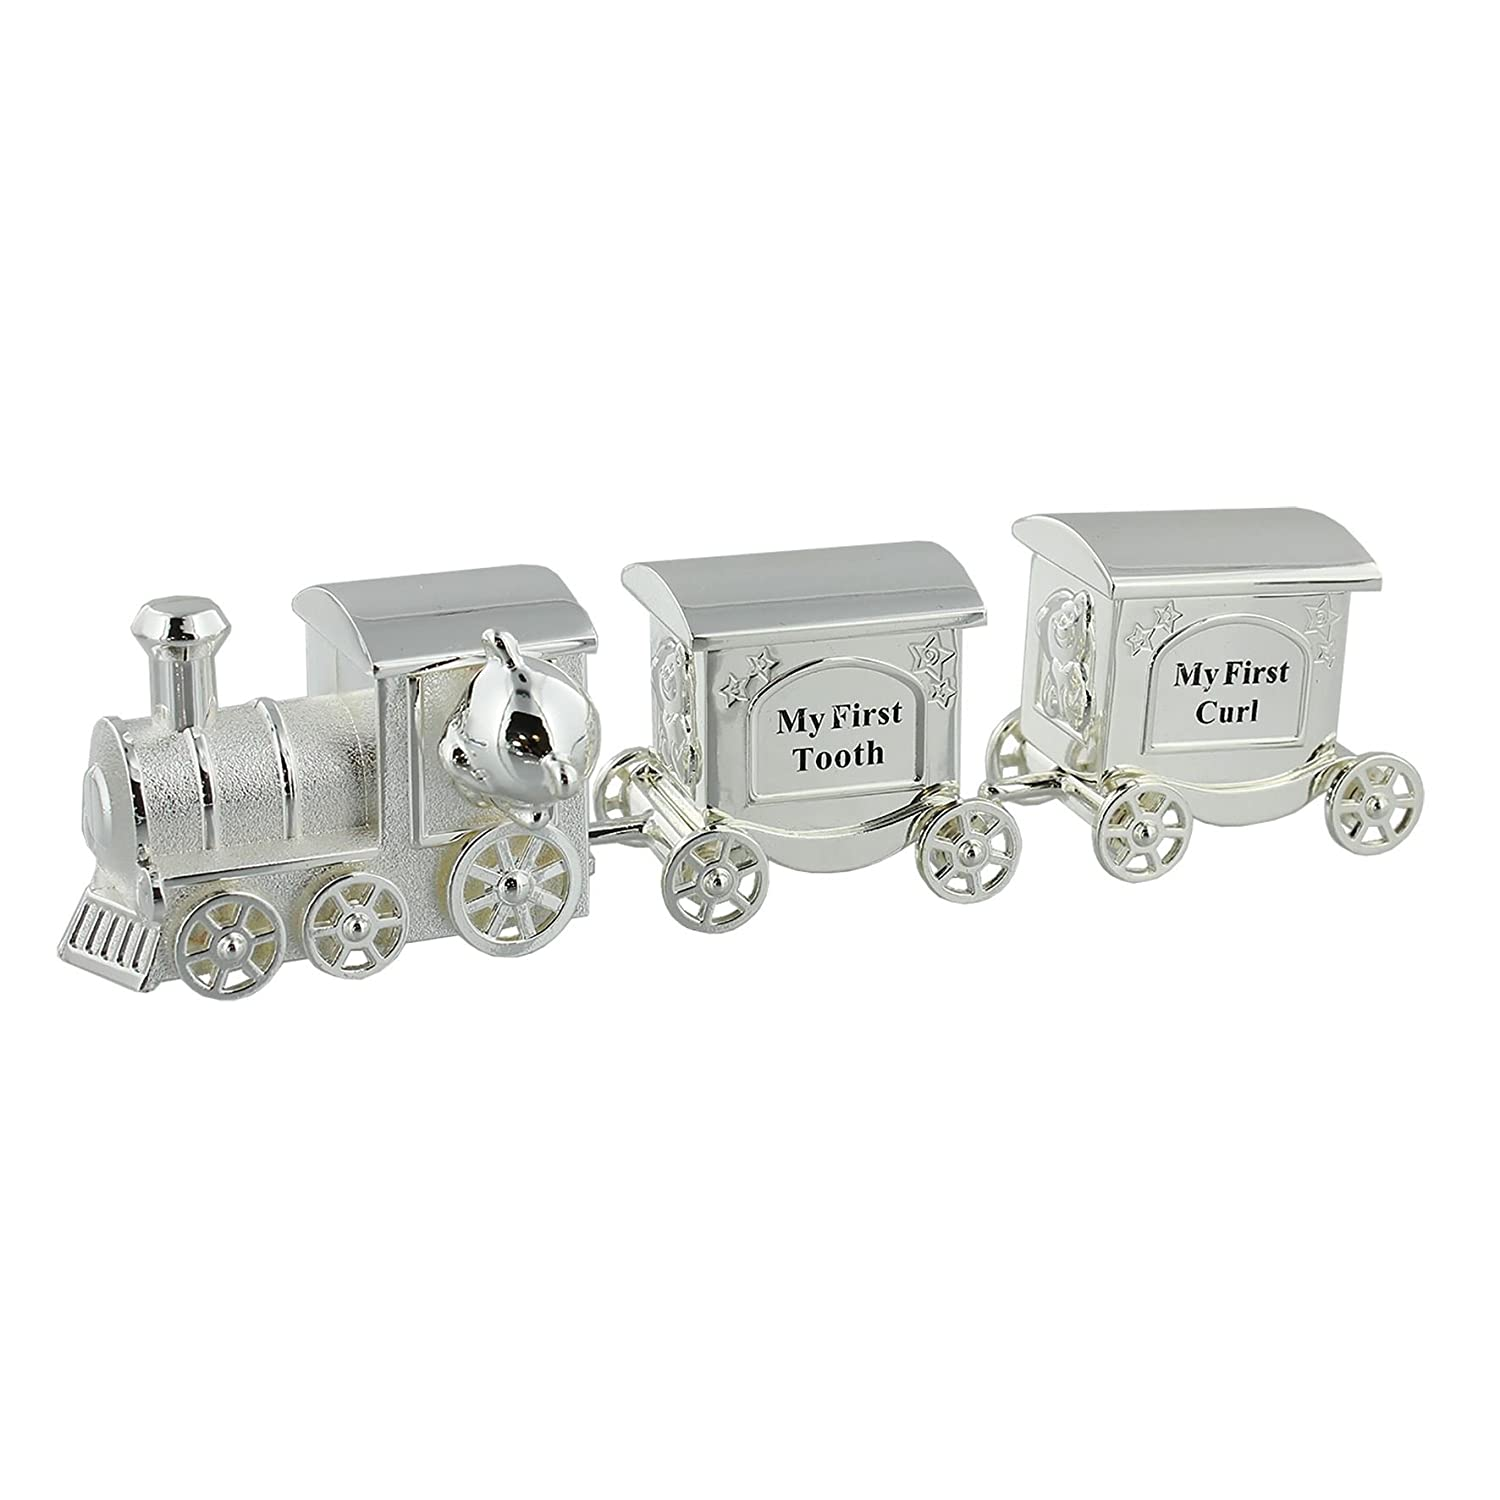 Train Money Box, Tooth & Curl Carriages- Silver Plated Baby Christening Gift by Widdop